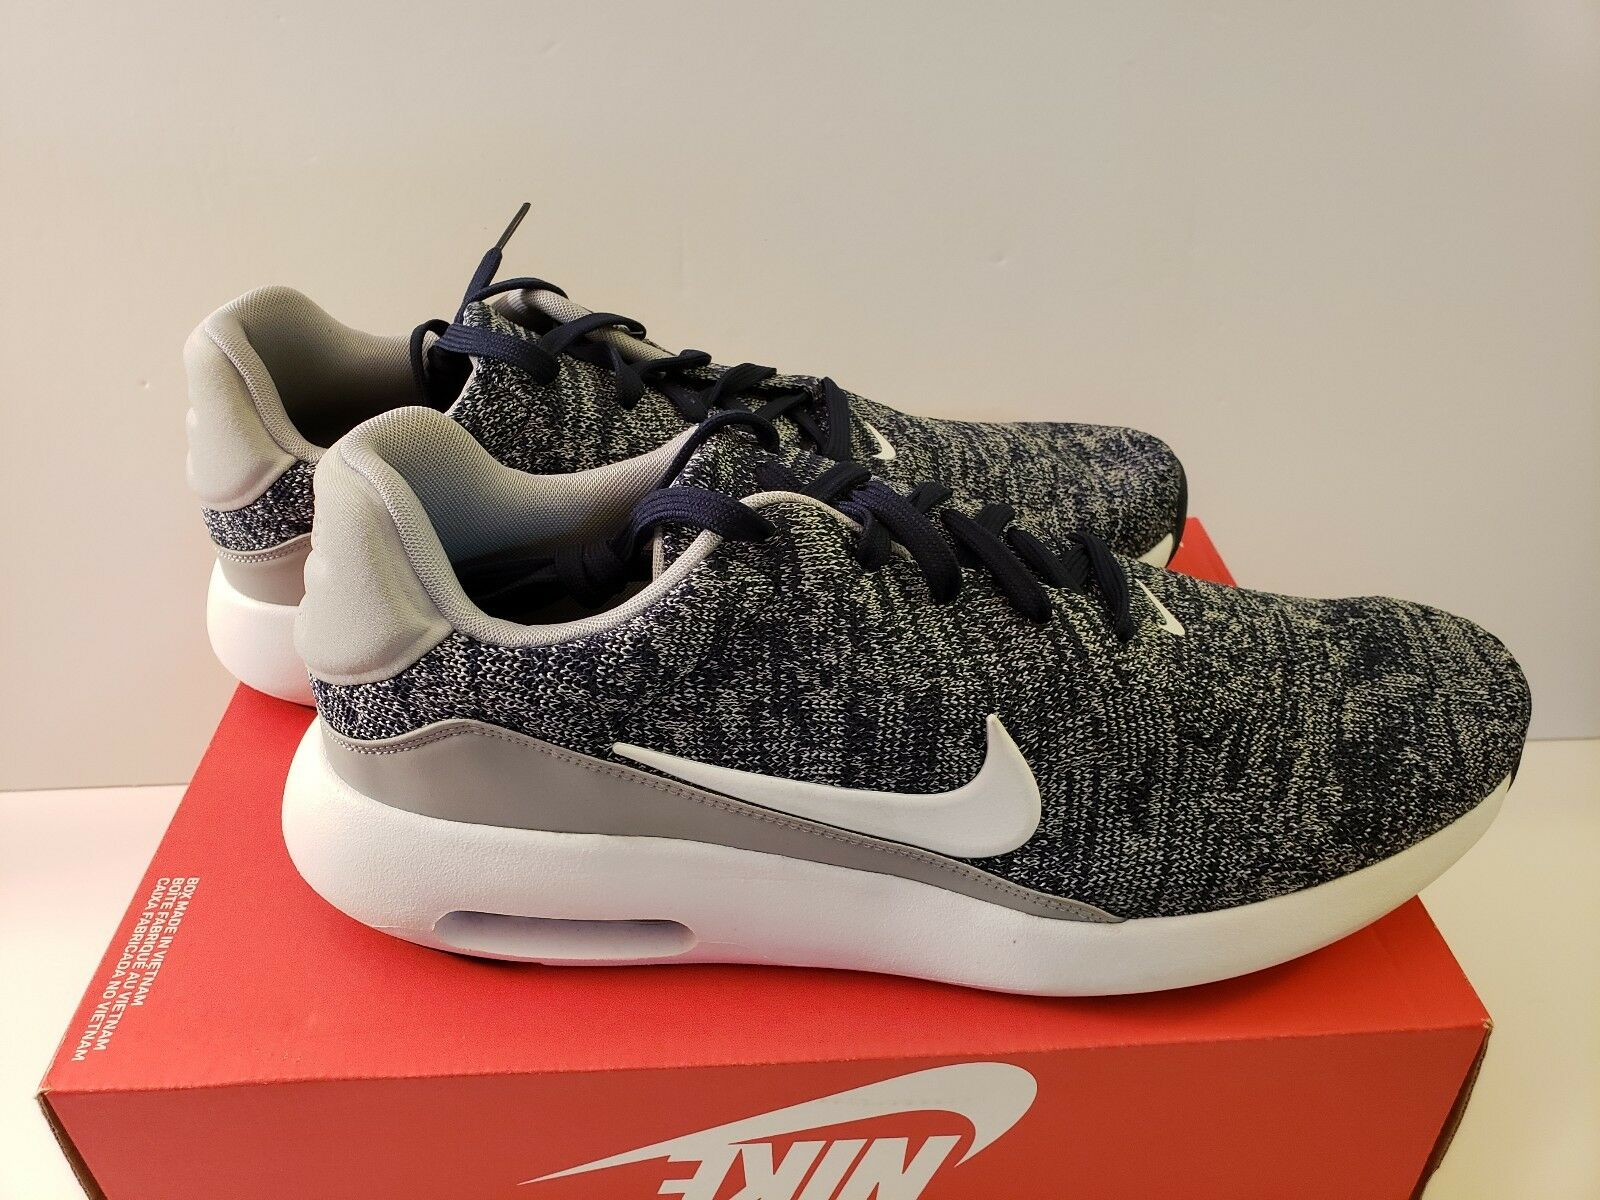 nike air max gris flyknit moderne les chaussures 876066-400 loup gris max taille 11,5 9940b1